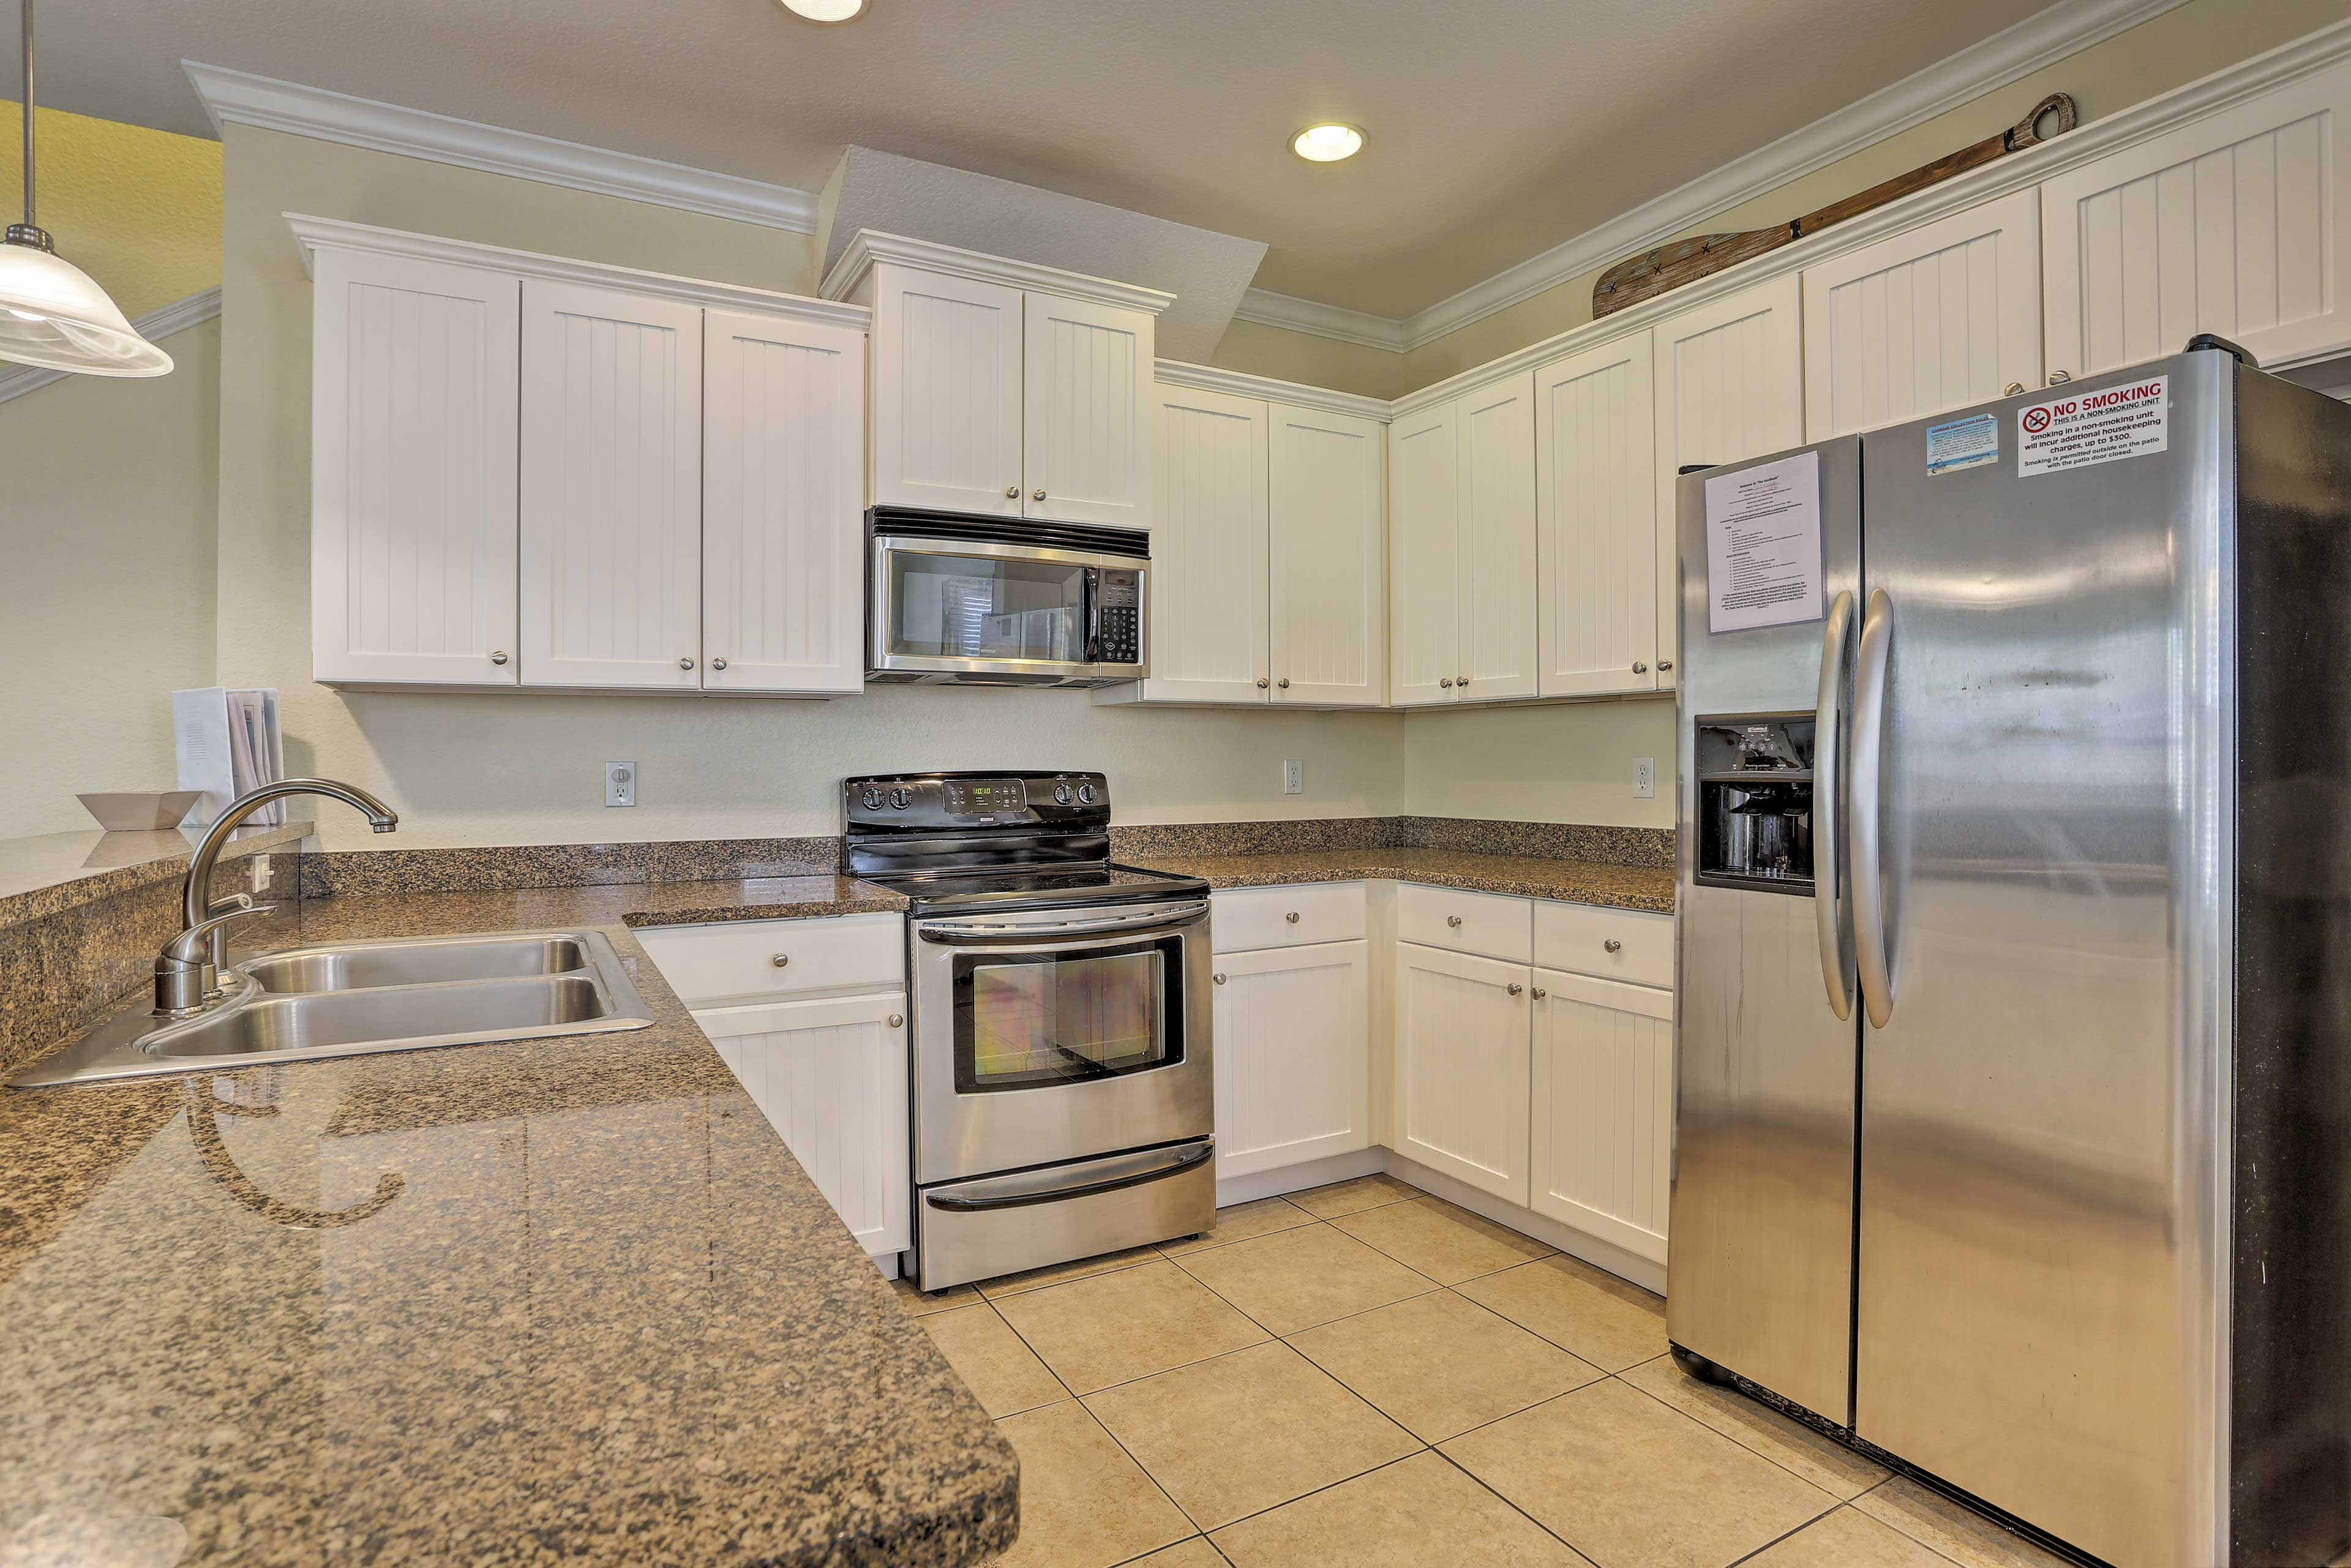 Prepare your favorite recipes in the modern, fully equipped kitchen.